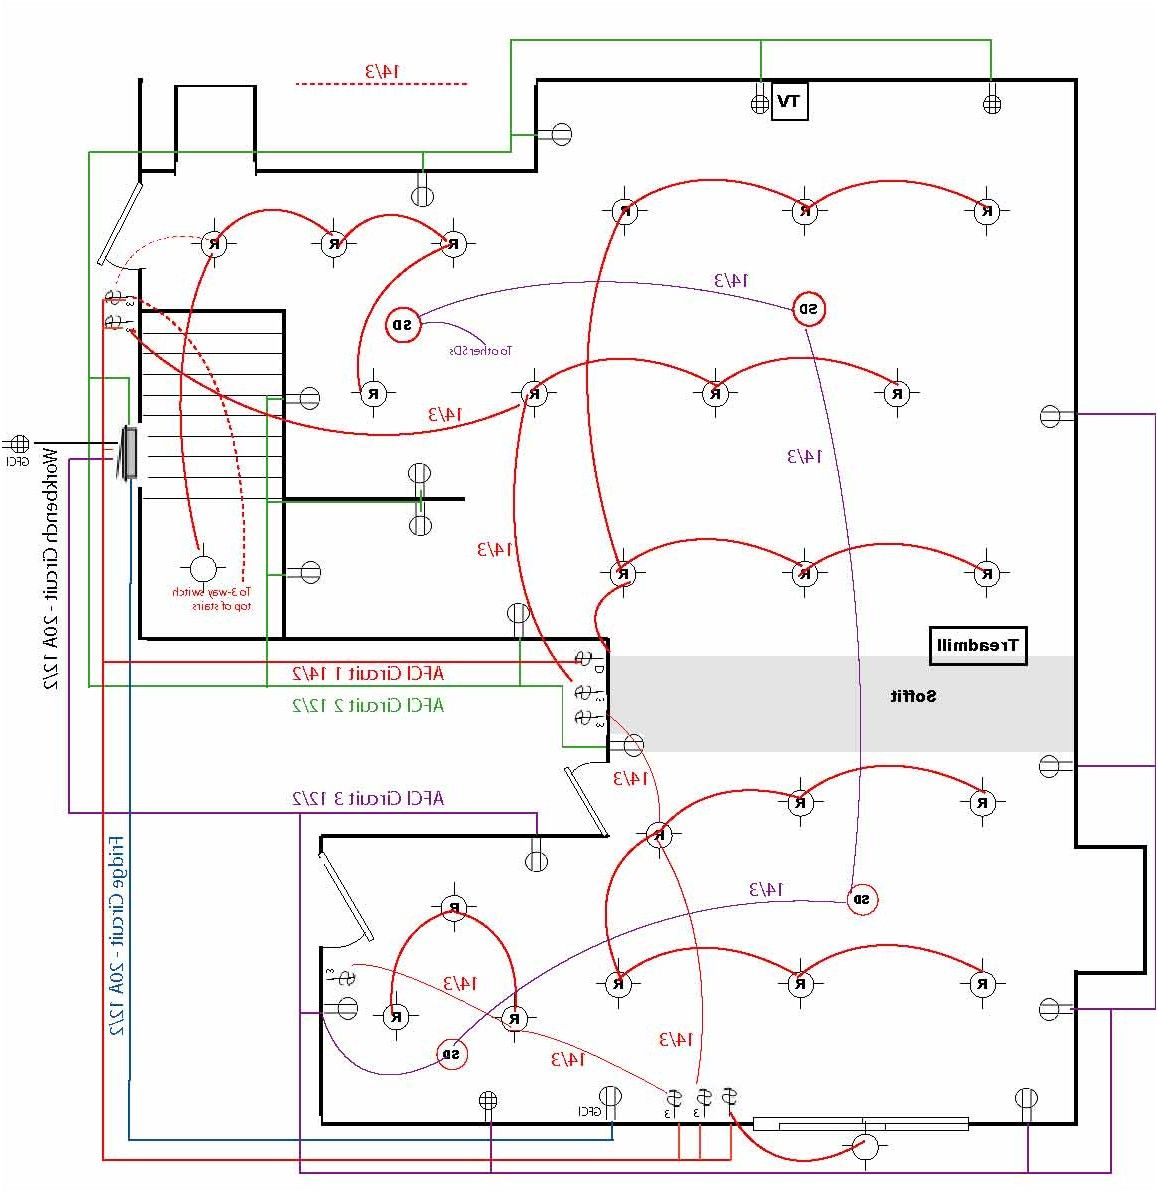 basement wiring diagram review for how to wire a diagram from rh pinterest com